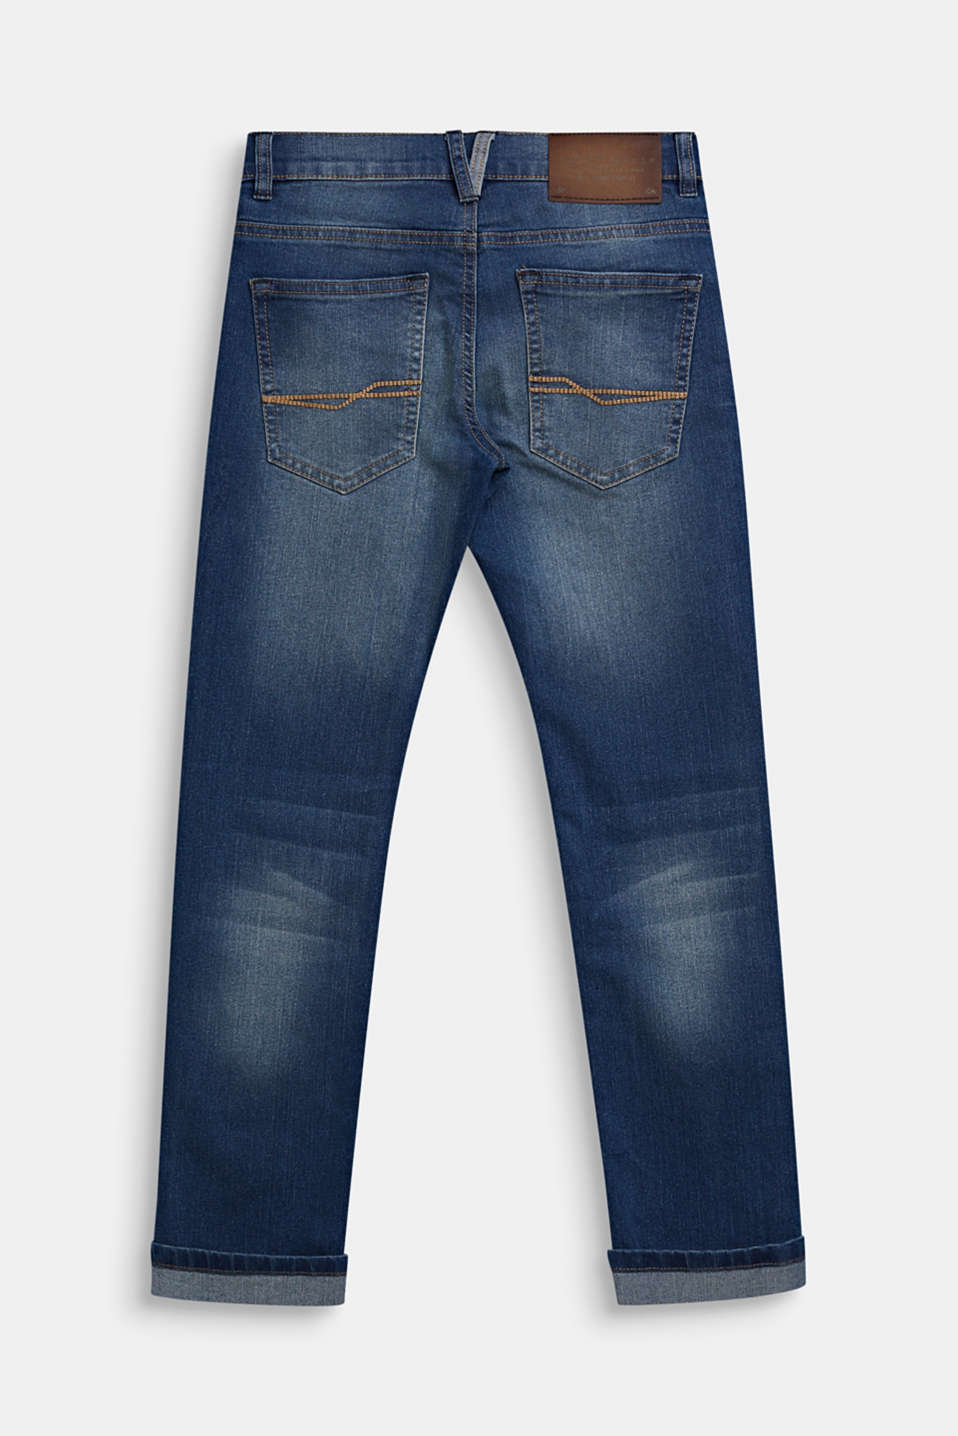 Jeans in a garment-washed look with turn-up hems, LCMEDIUM WASH DE, detail image number 1